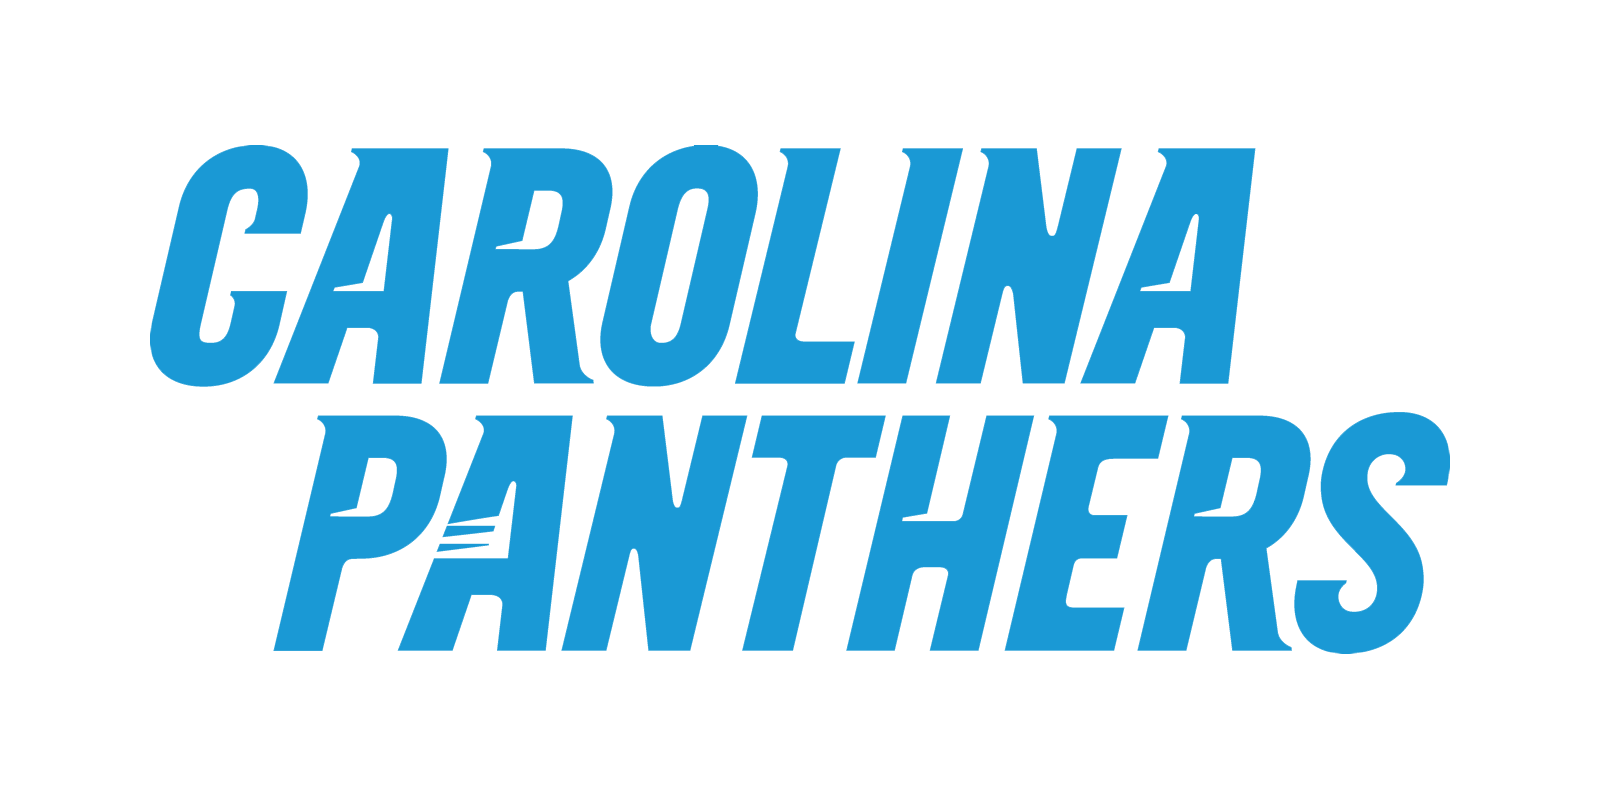 how to draw the panthers logo